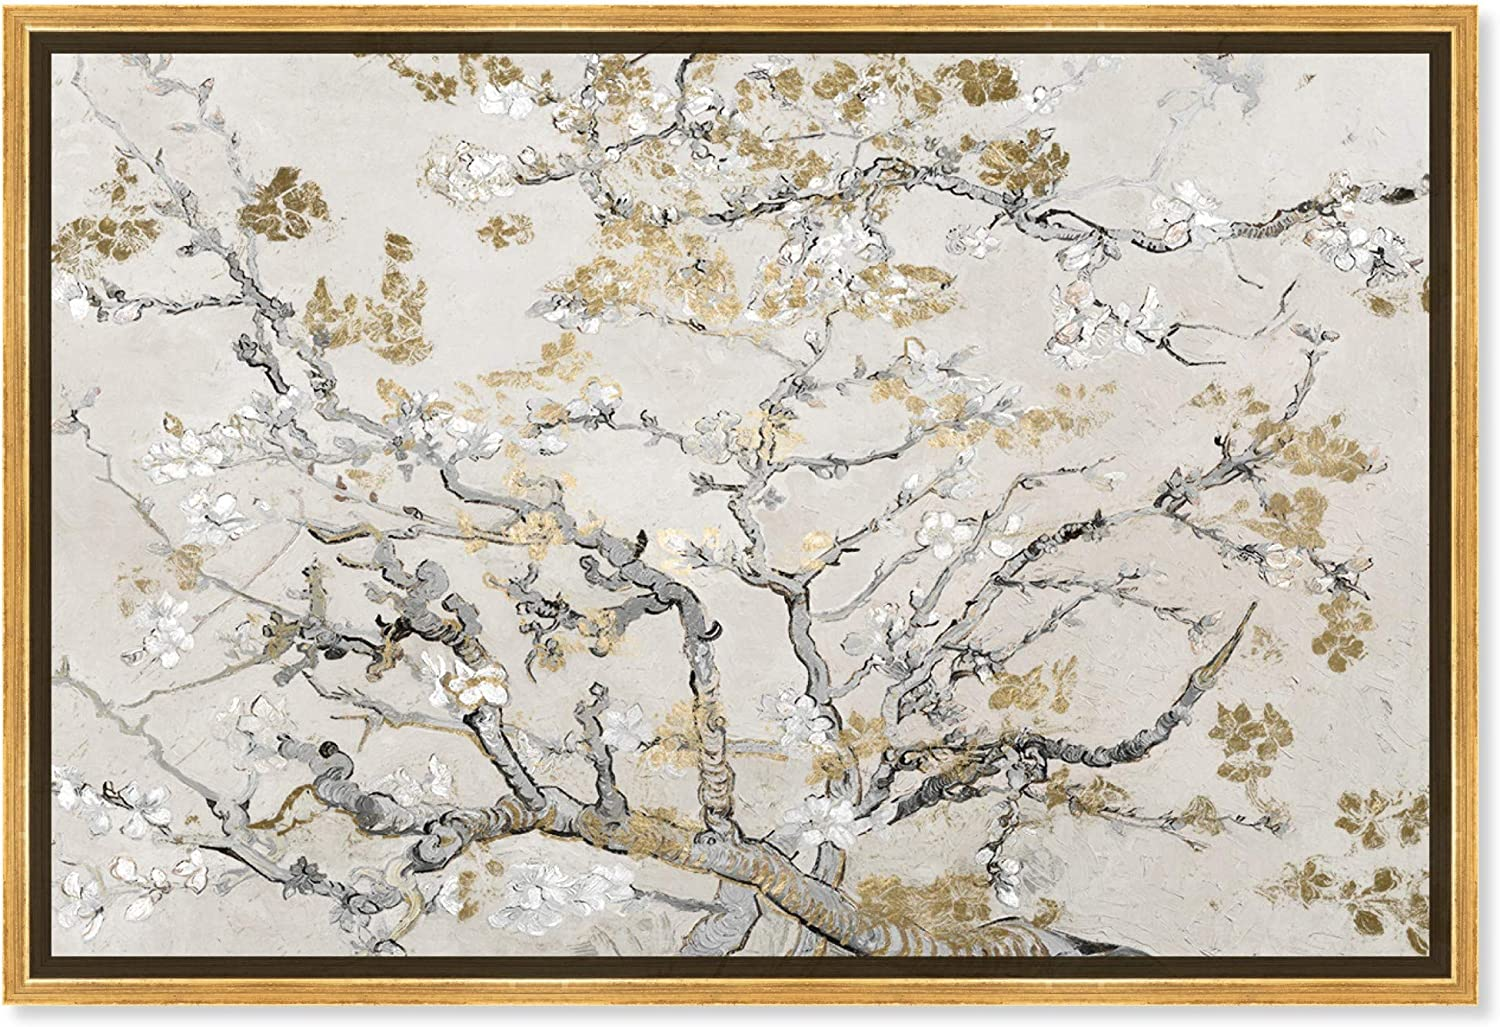 The Oliver Gal Artist Co. Classic and Figurative Framed Wall Art Canvas Prints 'Van Gogh Blossoms Inspiration Light' Impressionism Home Décor, 45